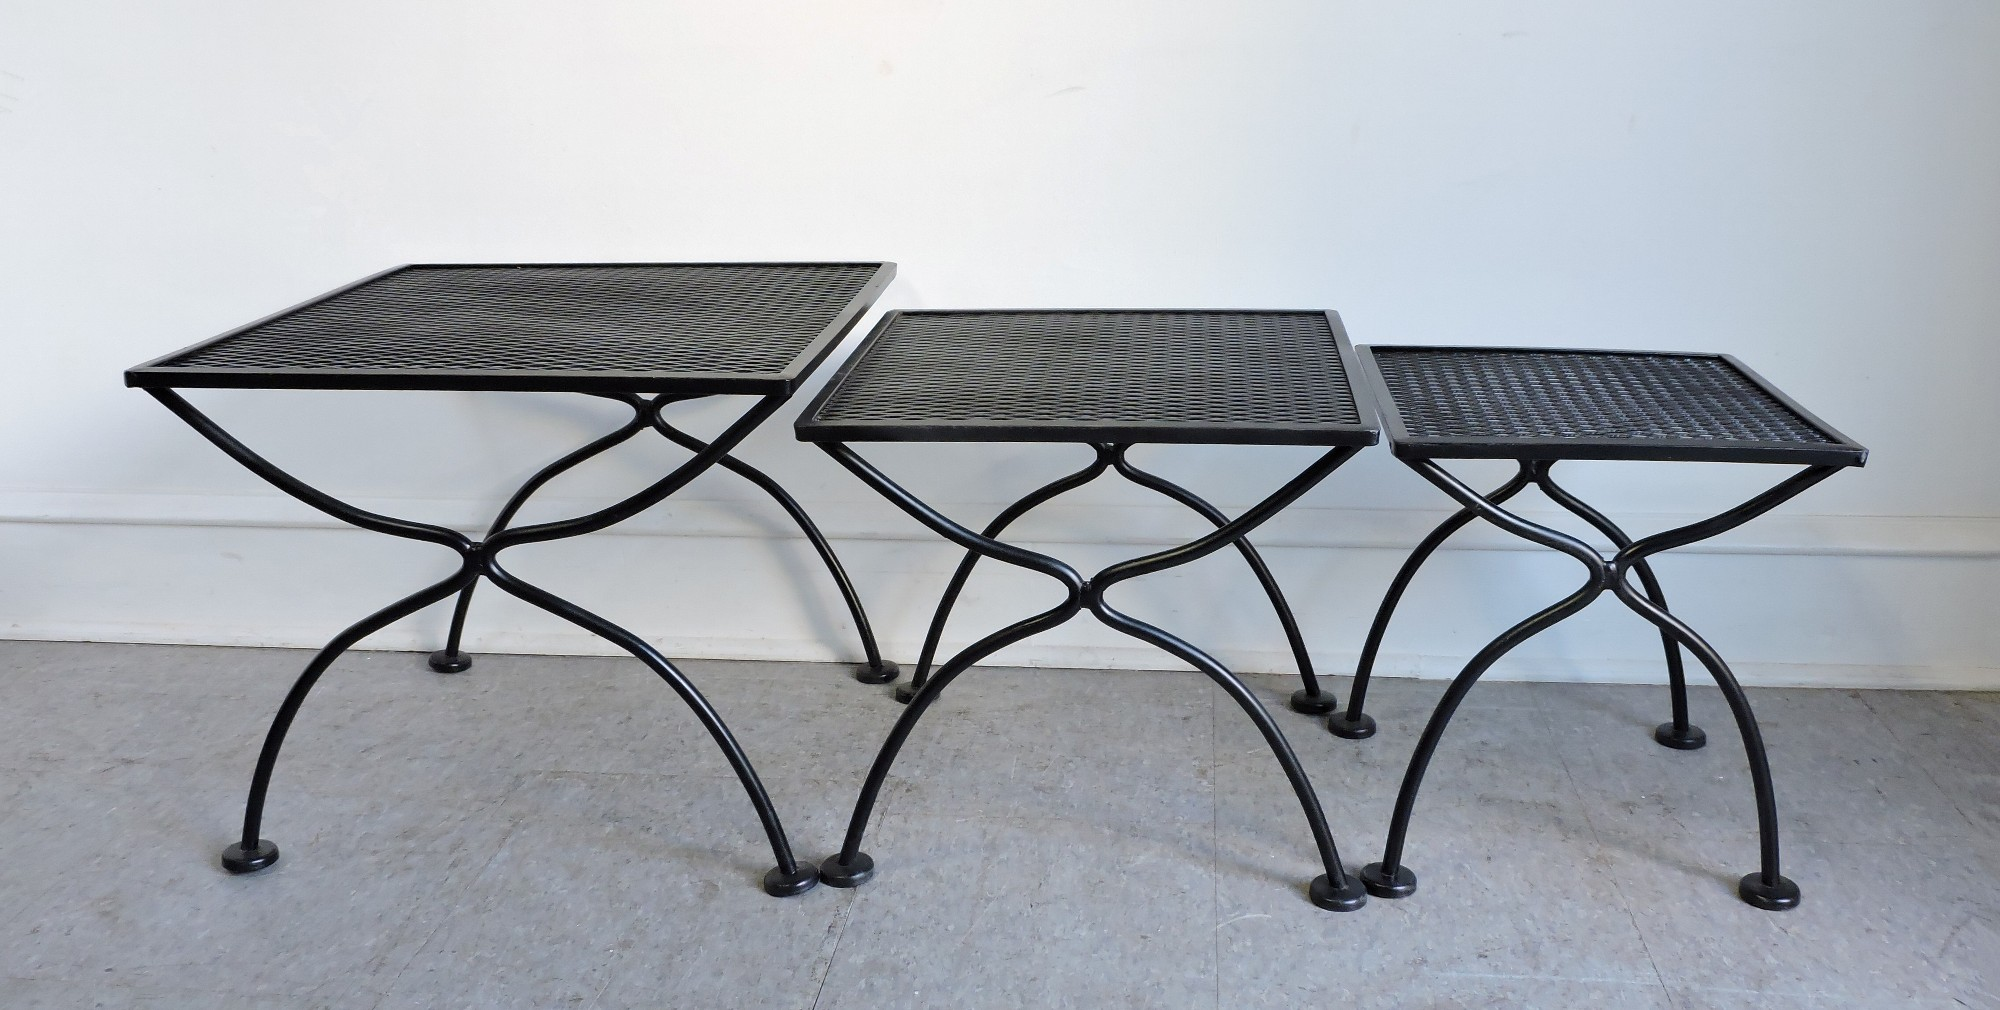 Beautiful Set Of 3 Salterini Wrought Iron Nesting Tables For The Patio.  Sturdy And Well Made, These Have A Fresh Coat Of Black Paint.